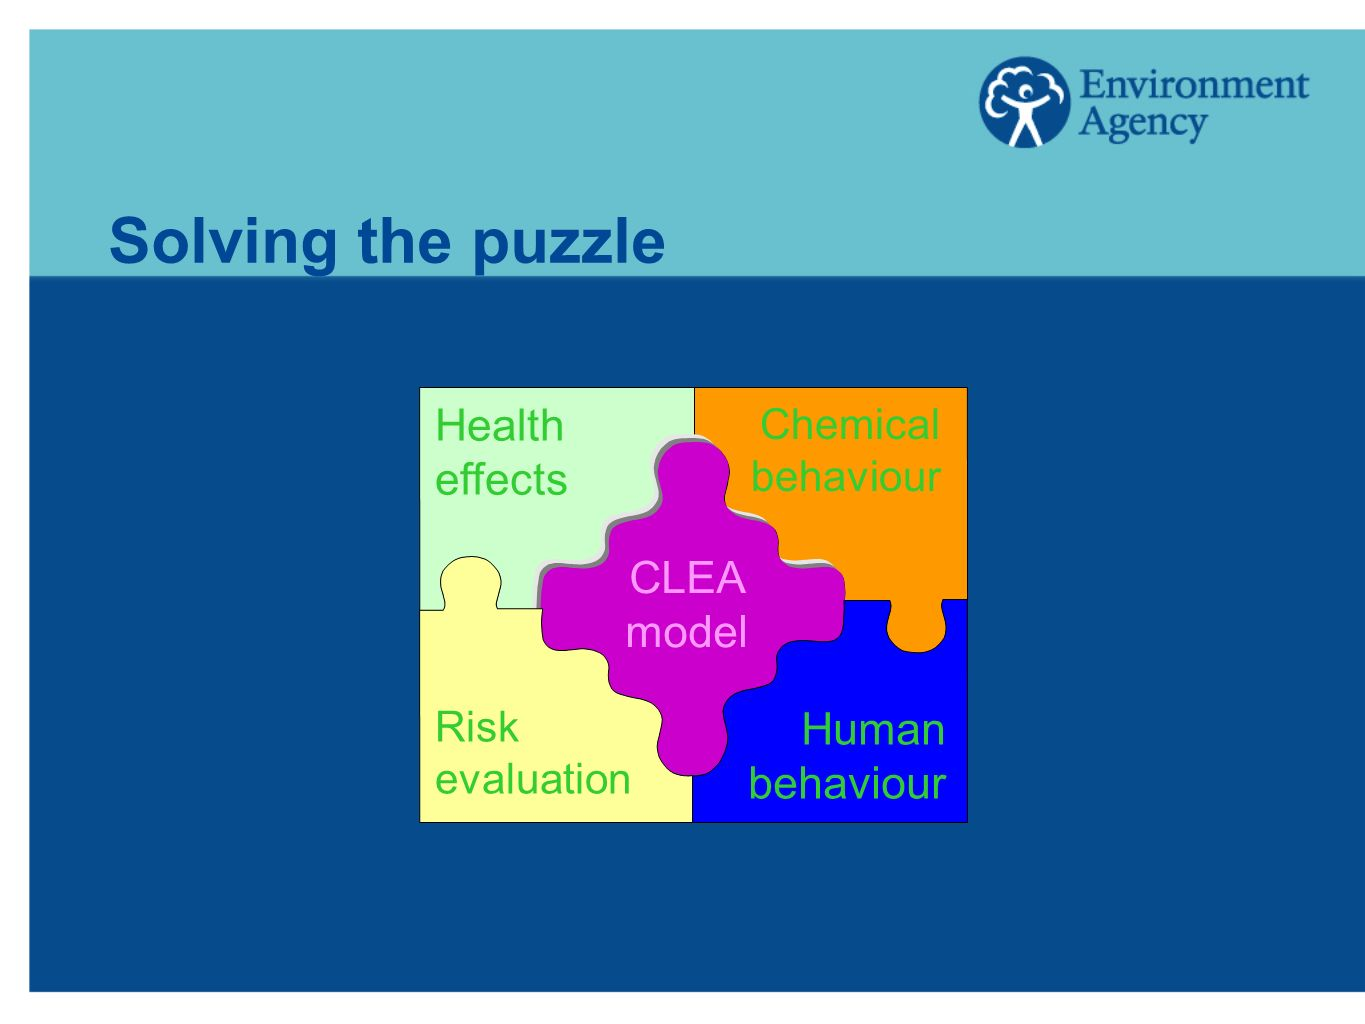 Solving the puzzle Health effects CLEA model Human behaviour